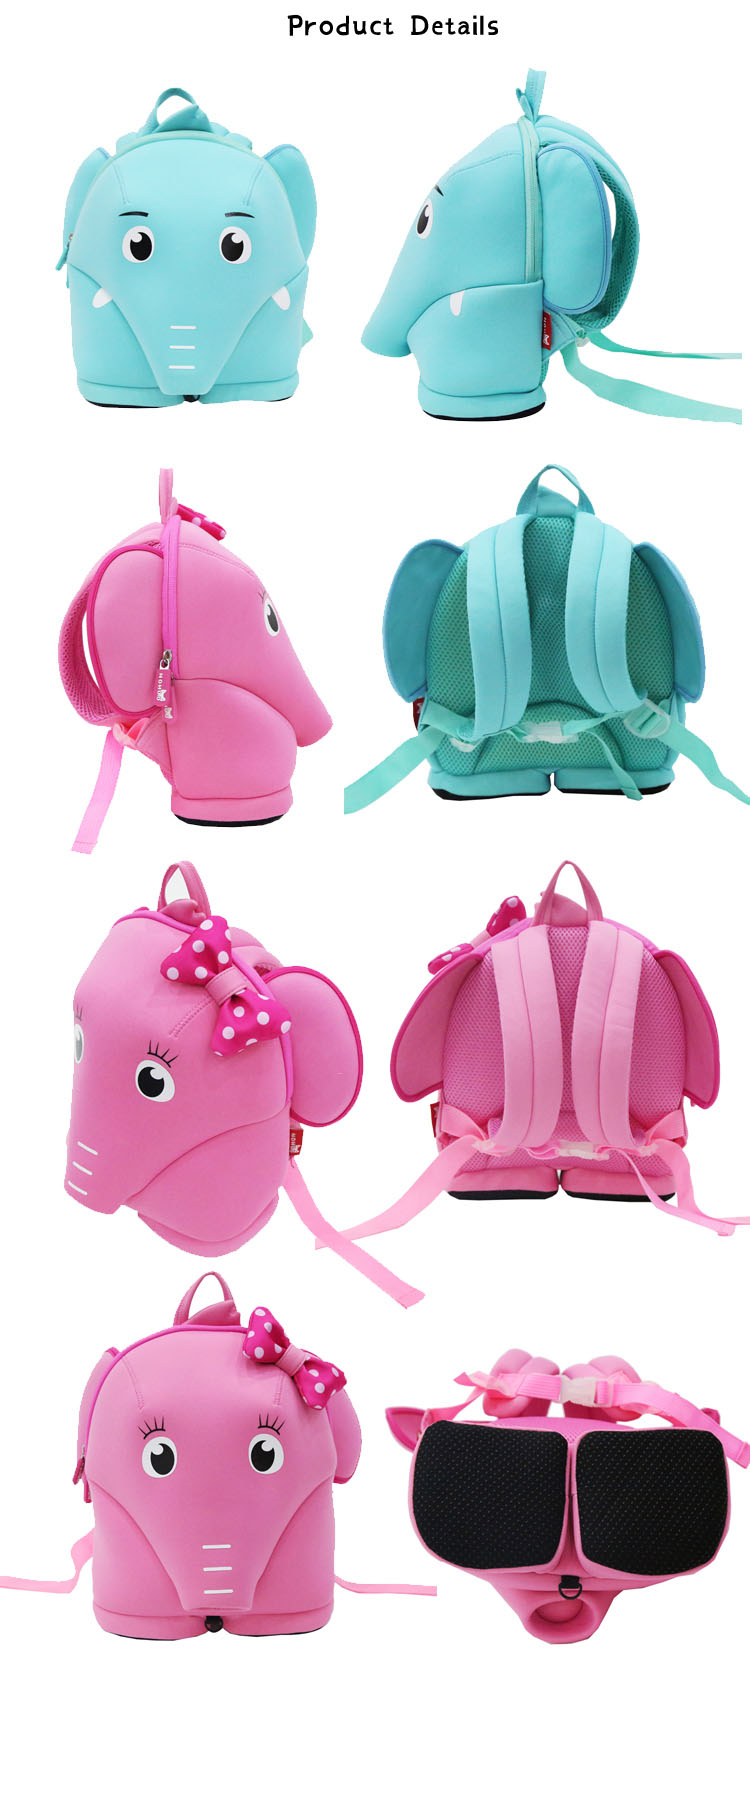 Nohoo Children Products-Neoprene Cute Kindergarten Toddler Safety Harness Backpack For Children